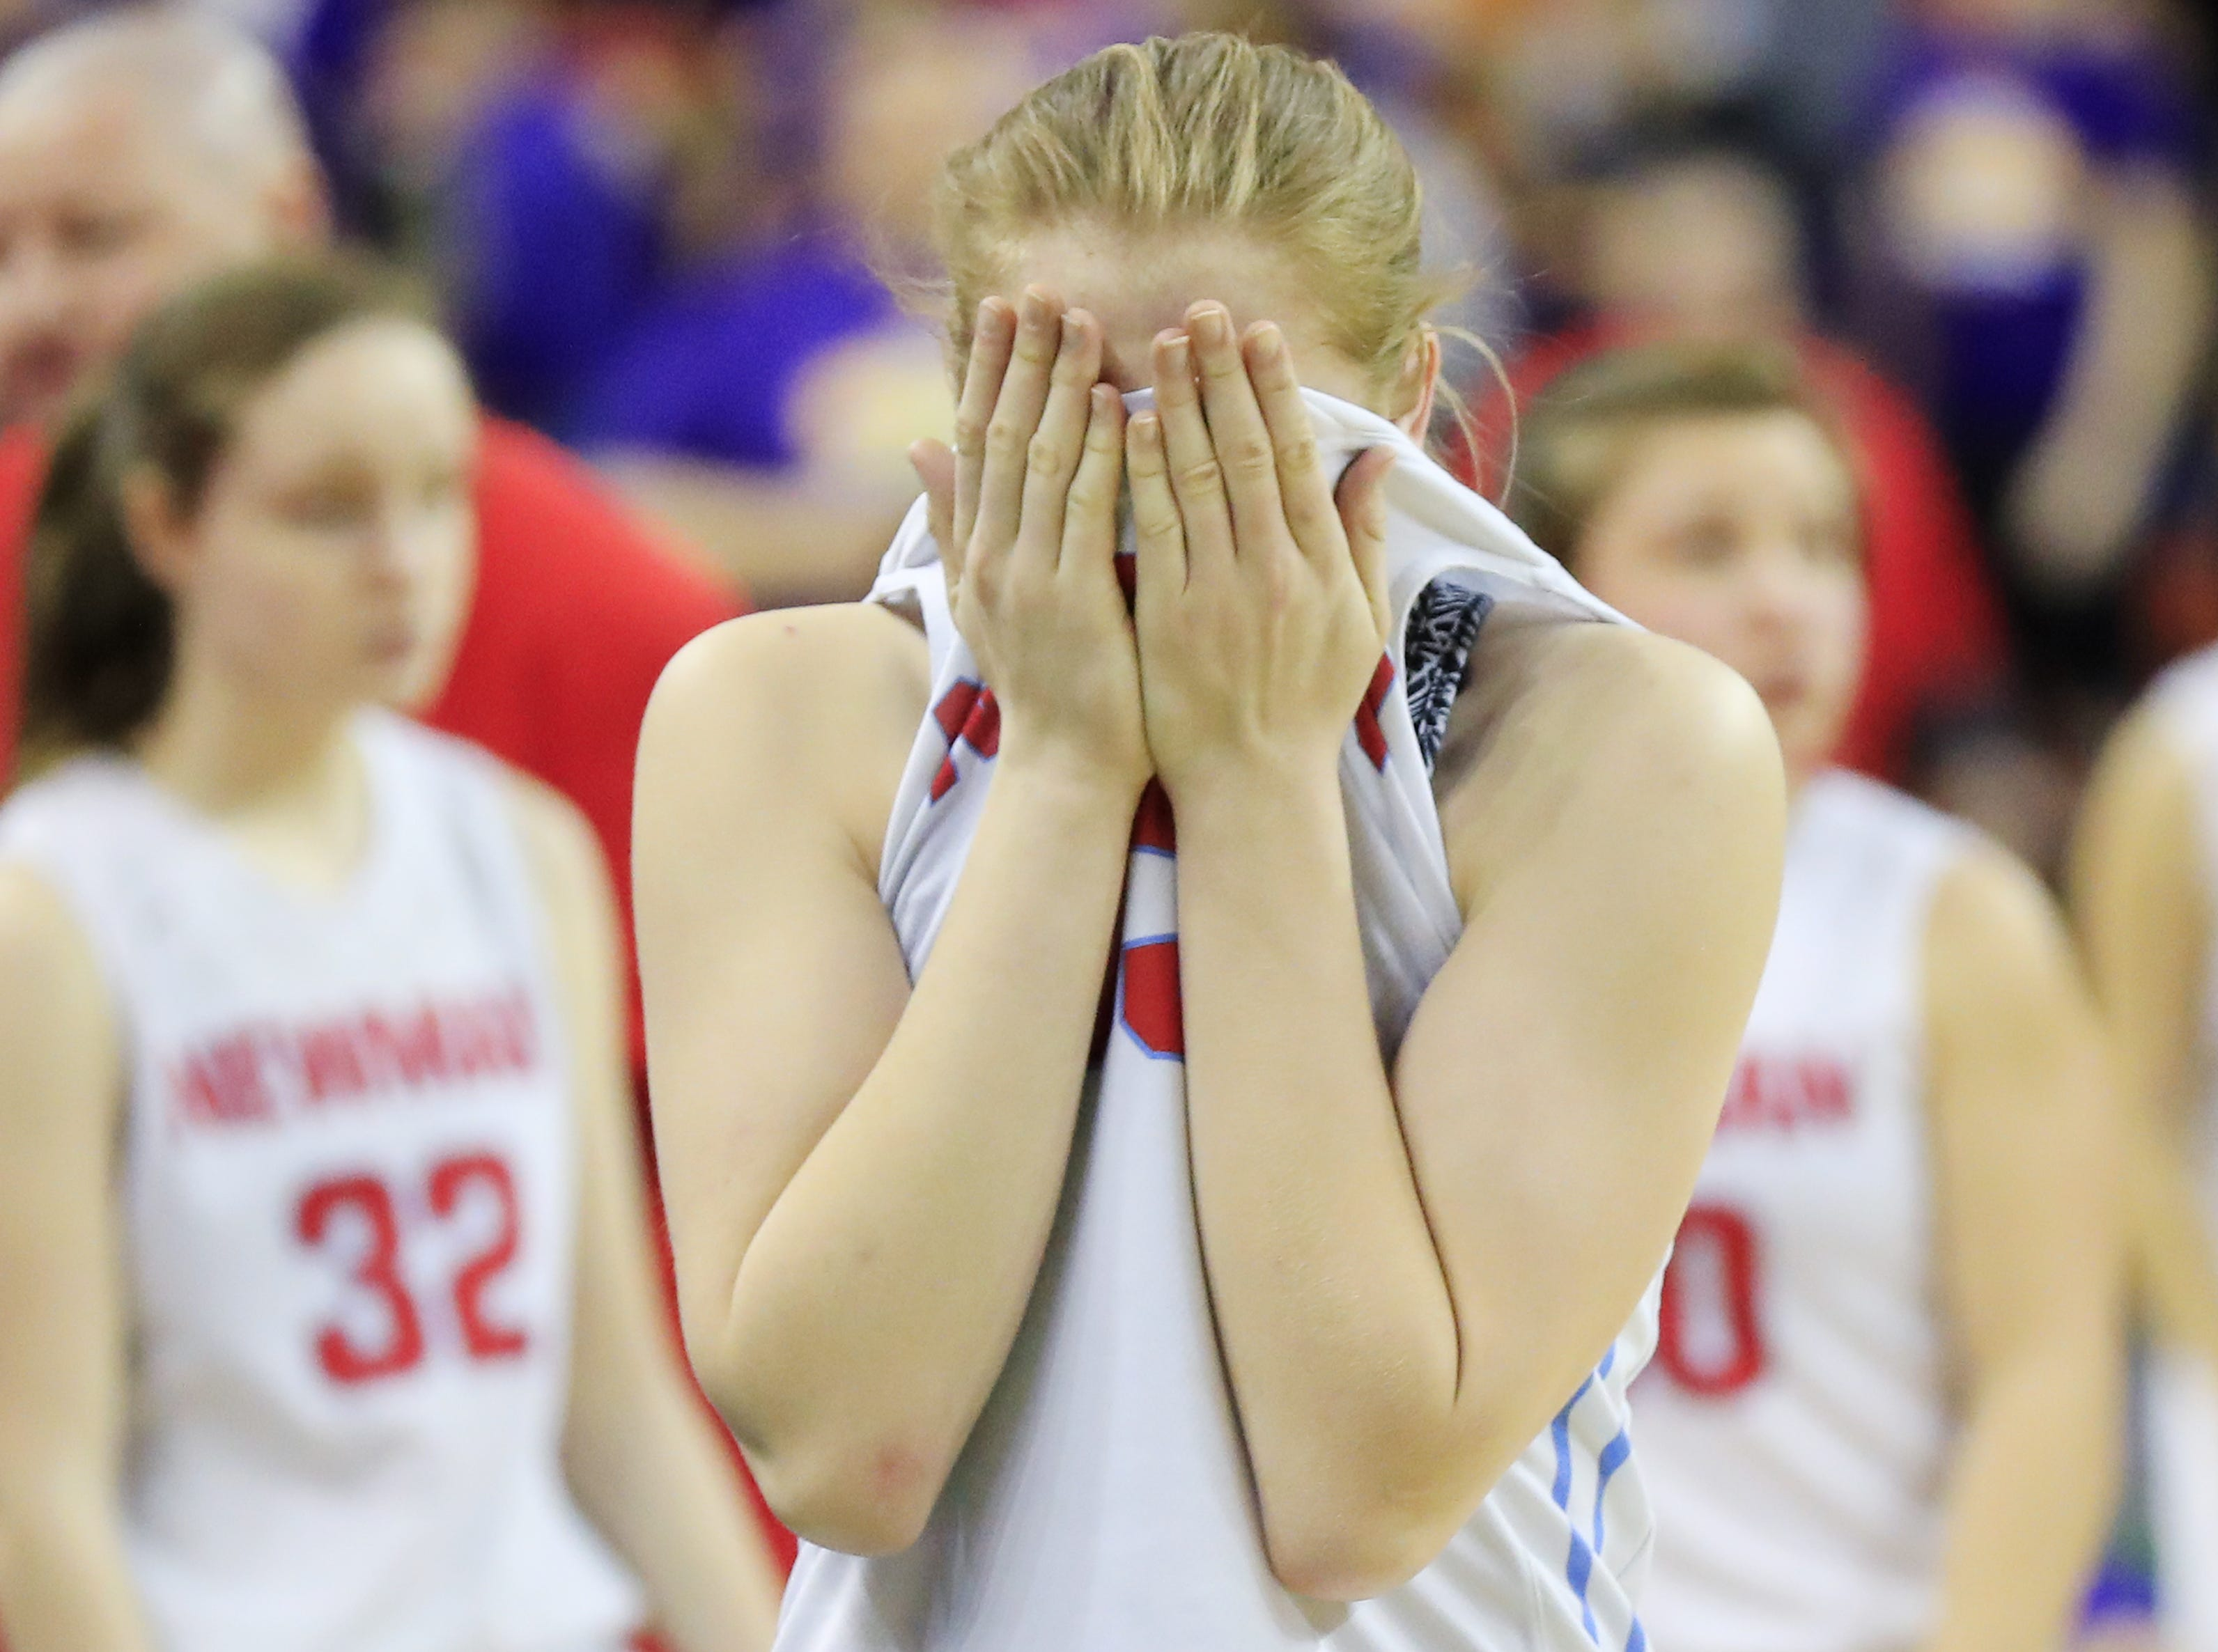 Wausau Newman Catholic's Jadelyn Ganski (33) reacts after the Cardinals lost to Clayton in a Division 5 semifinal at the WIAA state girls basketball tournament at the Resch Center on Friday, March 8, 2019 in Ashwaubenon, Wis. Adam Wesley/USA TODAY NETWORK-Wisconsin